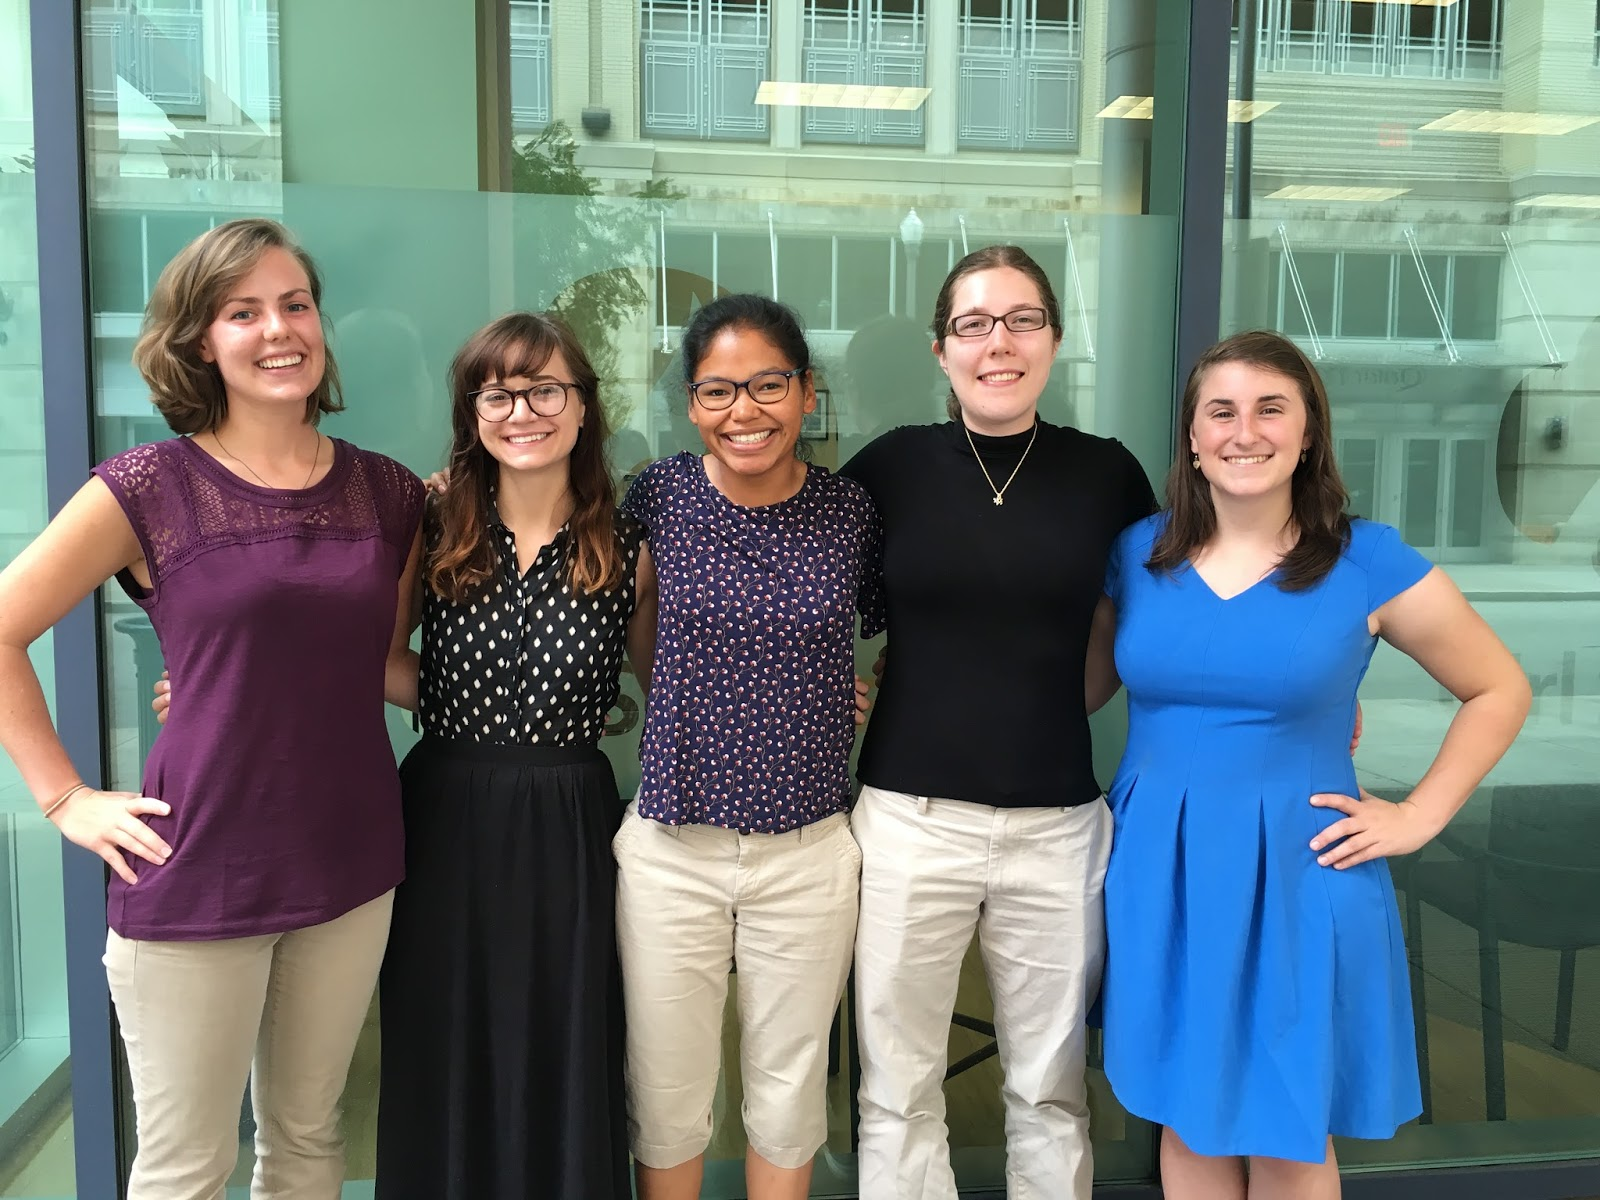 Girl scouts western pennsylvania september 2016 student conservation association sca interns gathered at girl scouts western pennsylvania gswpa headquarters in pittsburgh for training and to plan publicscrutiny Image collections